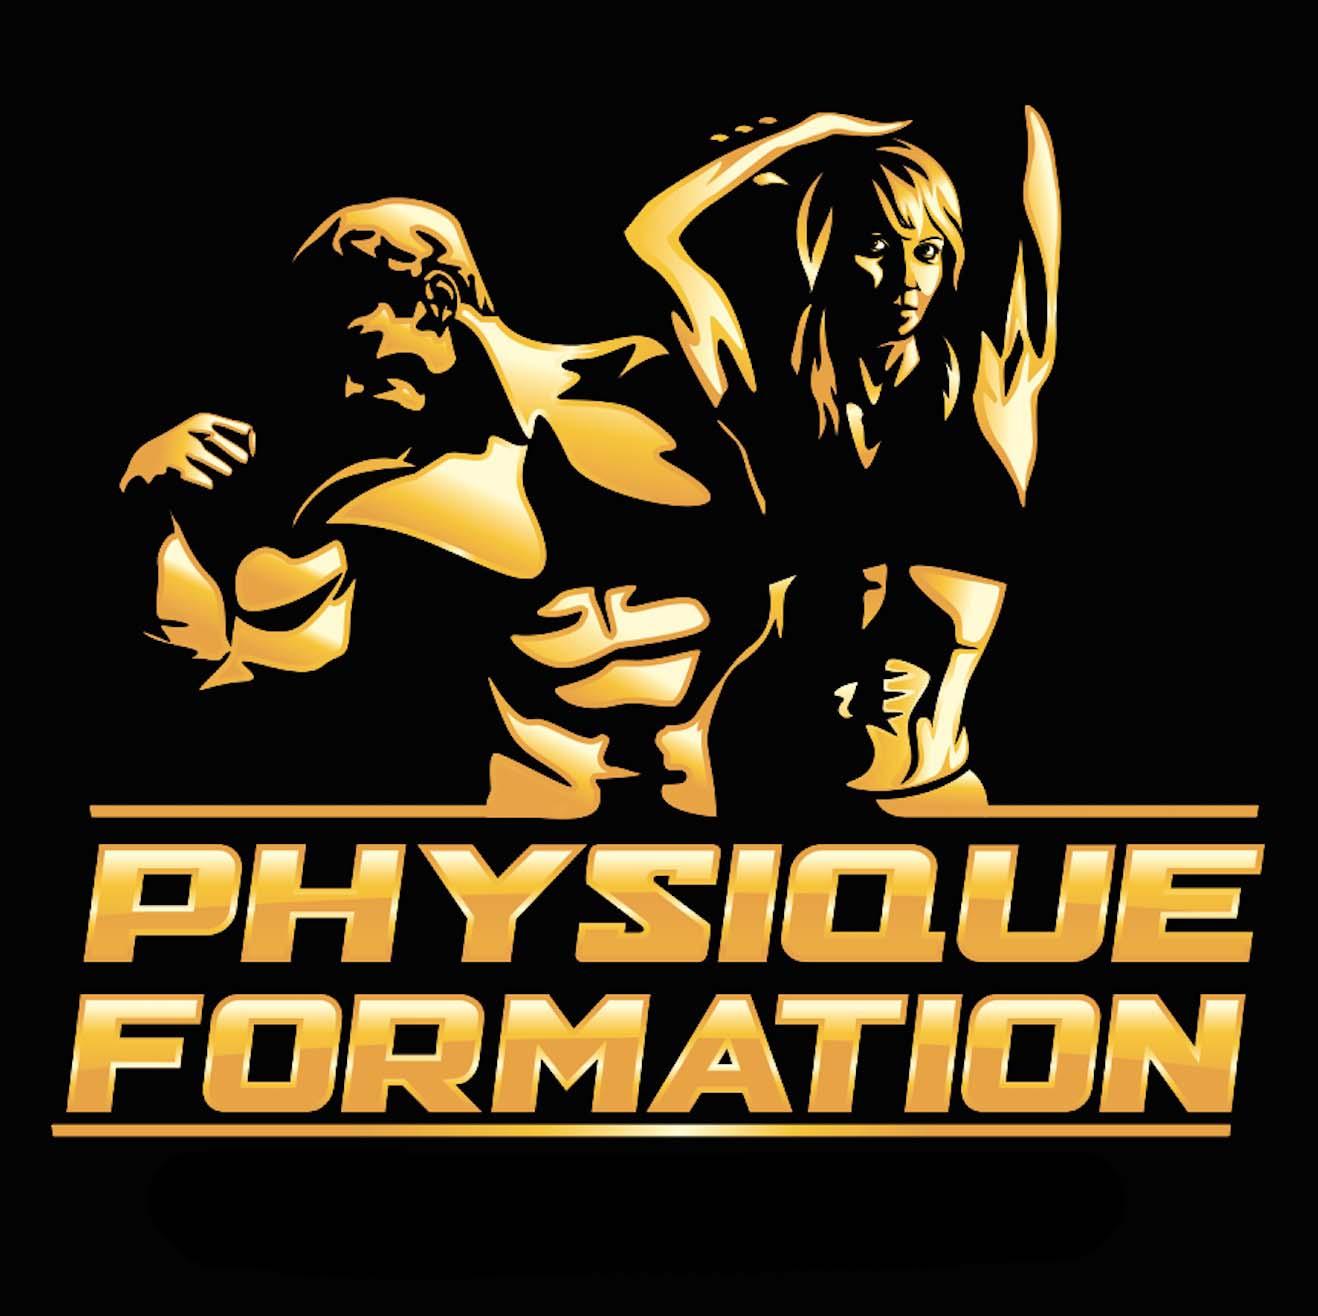 Physique Formation